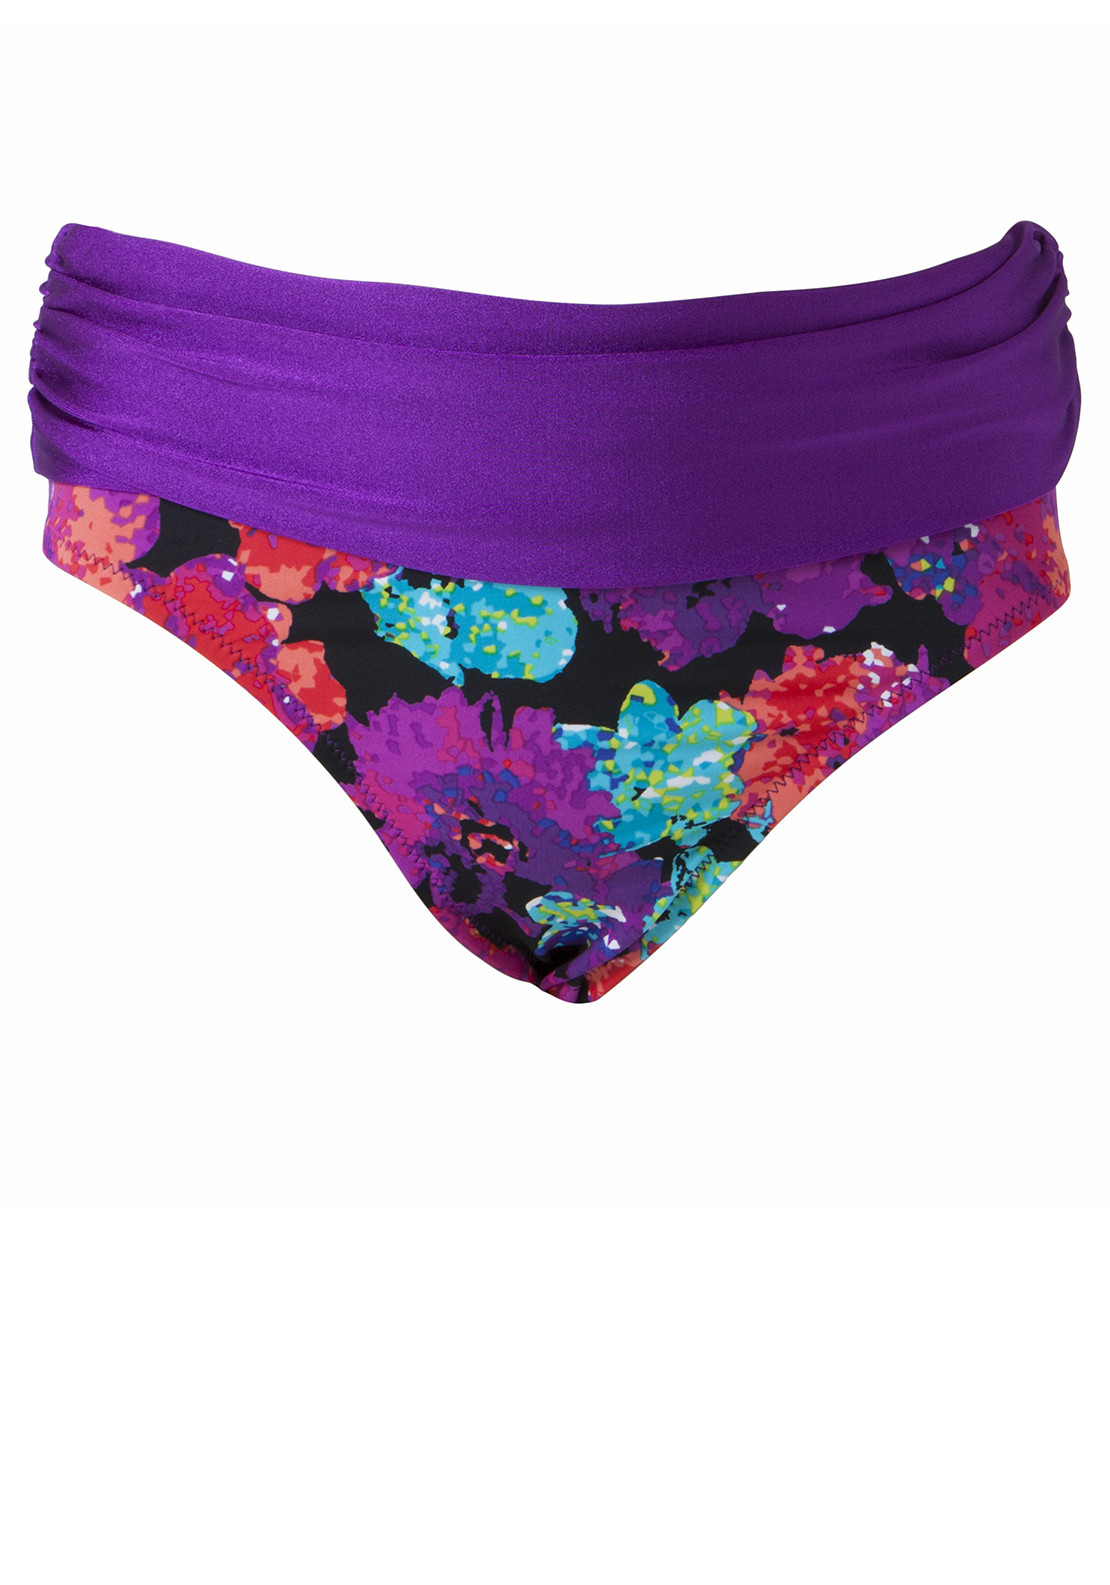 Pour Moi? Cosmopolitan Fold Bikini Brief, Multi-Coloured